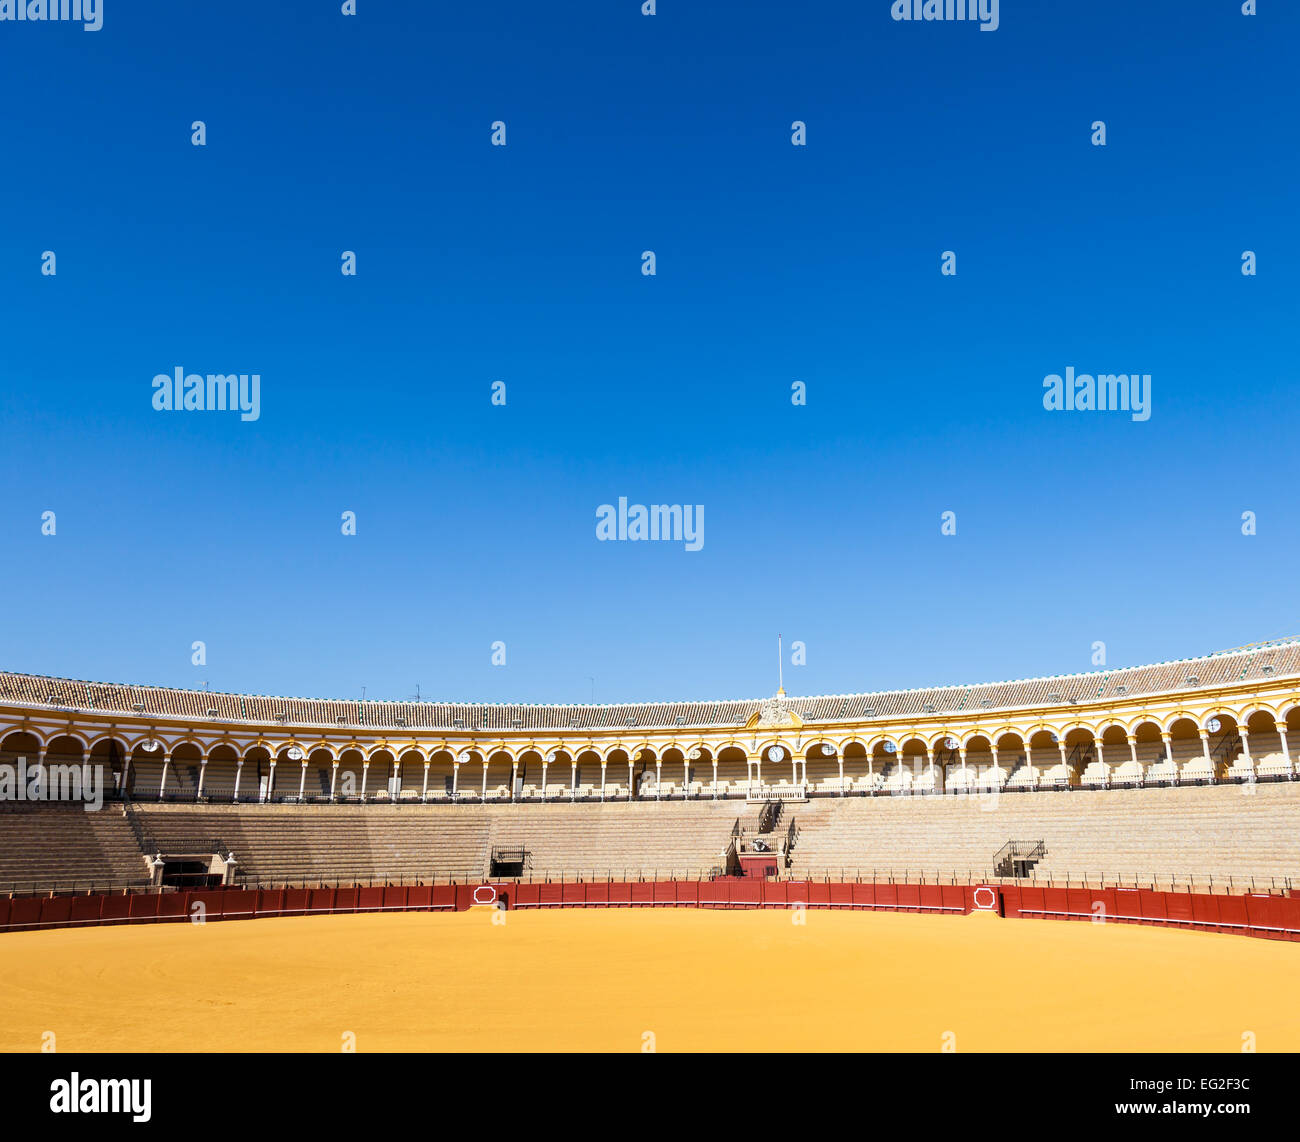 The Plaza de Toros de la Real Maestranza de Caballería de Sevilla is the oldest bullring in the world. - Stock Image